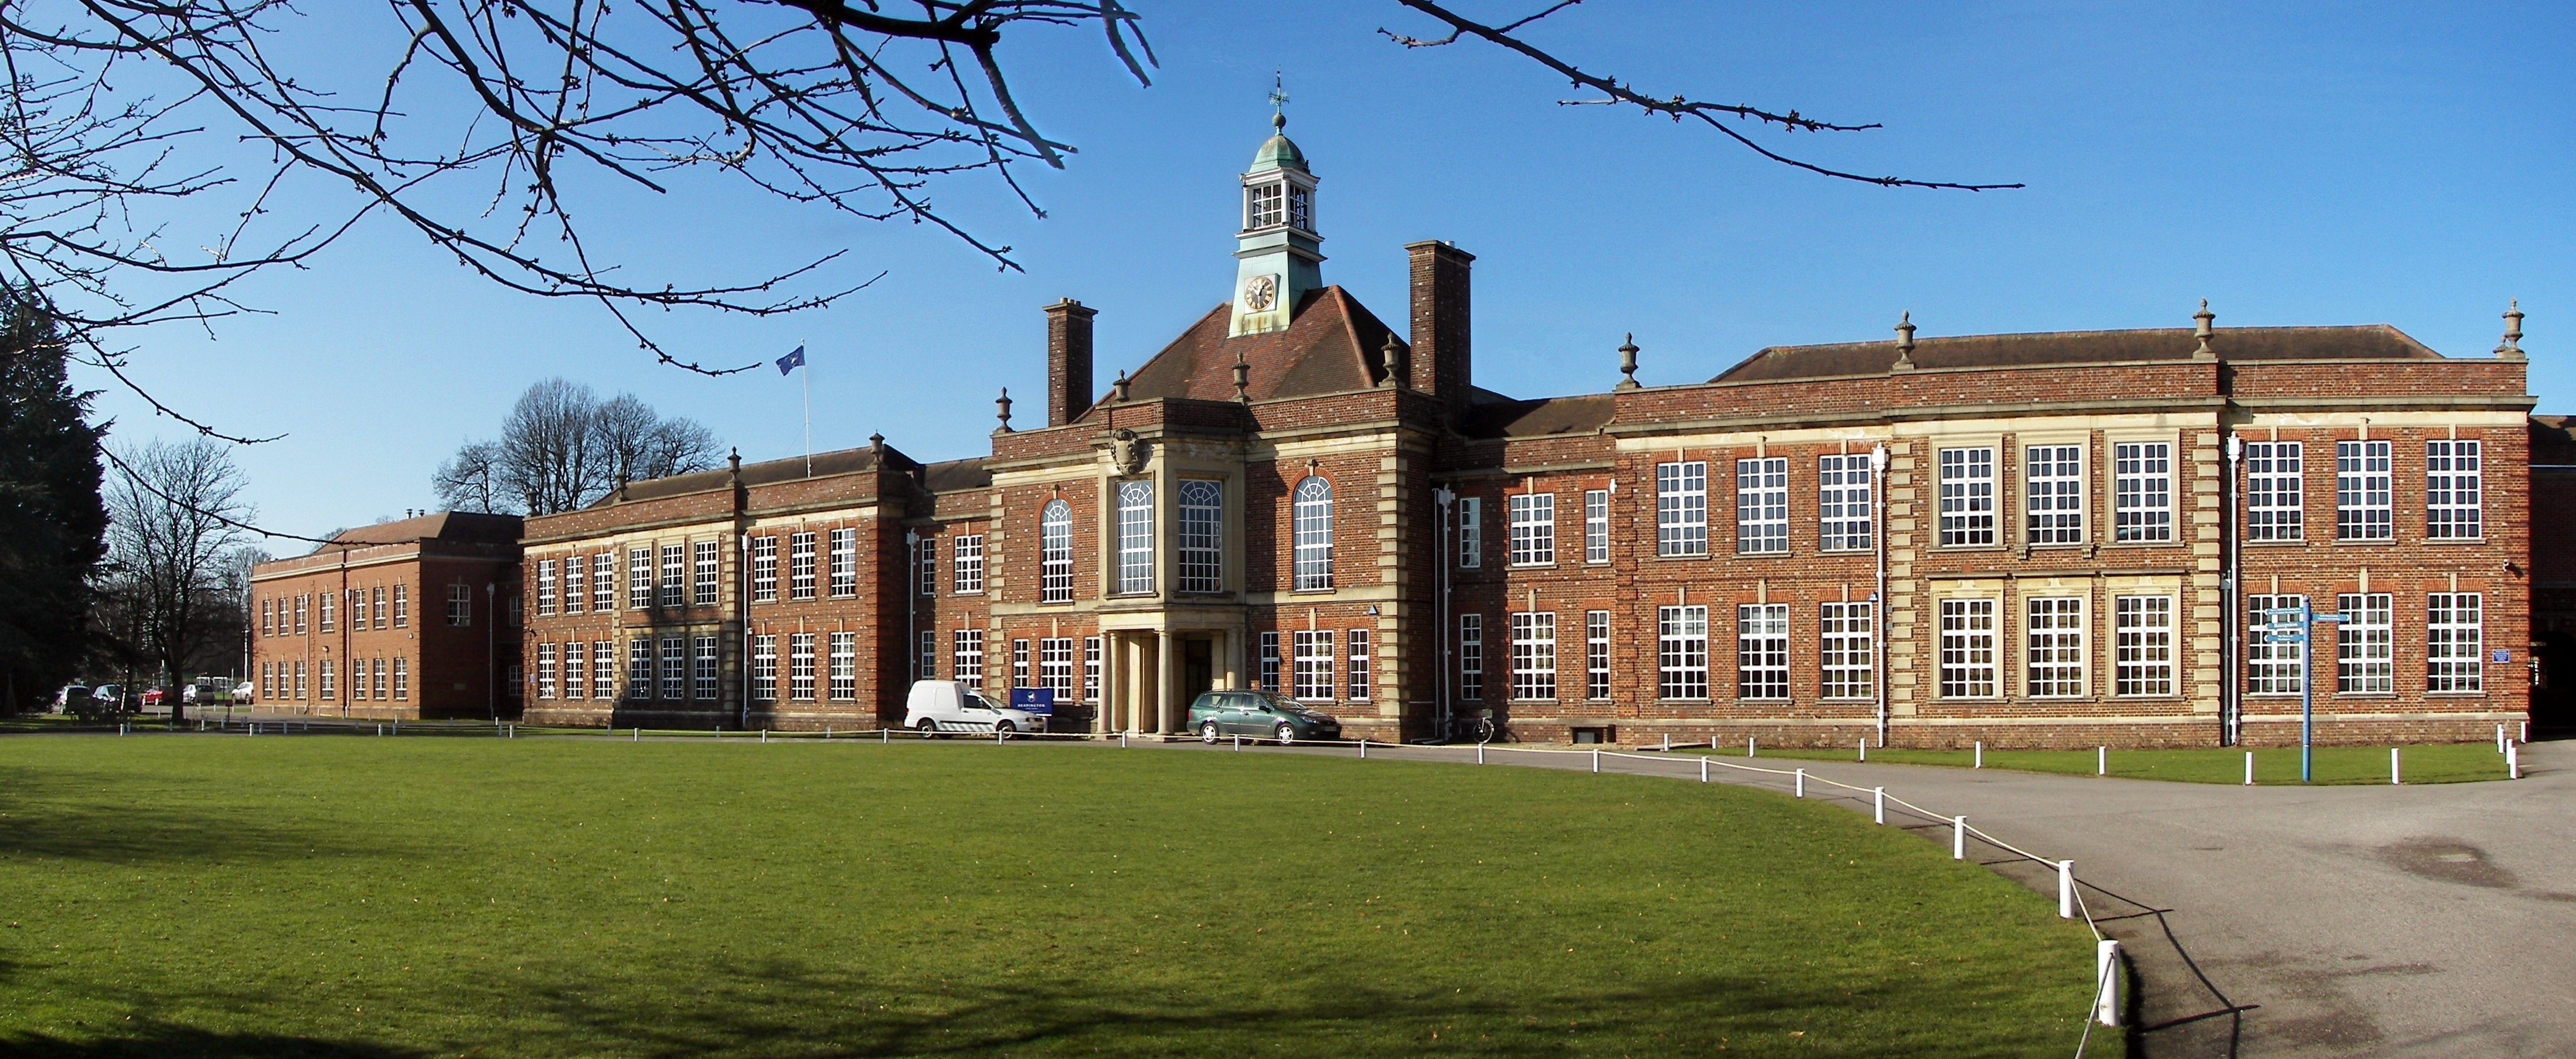 Headington School Oxfordshire